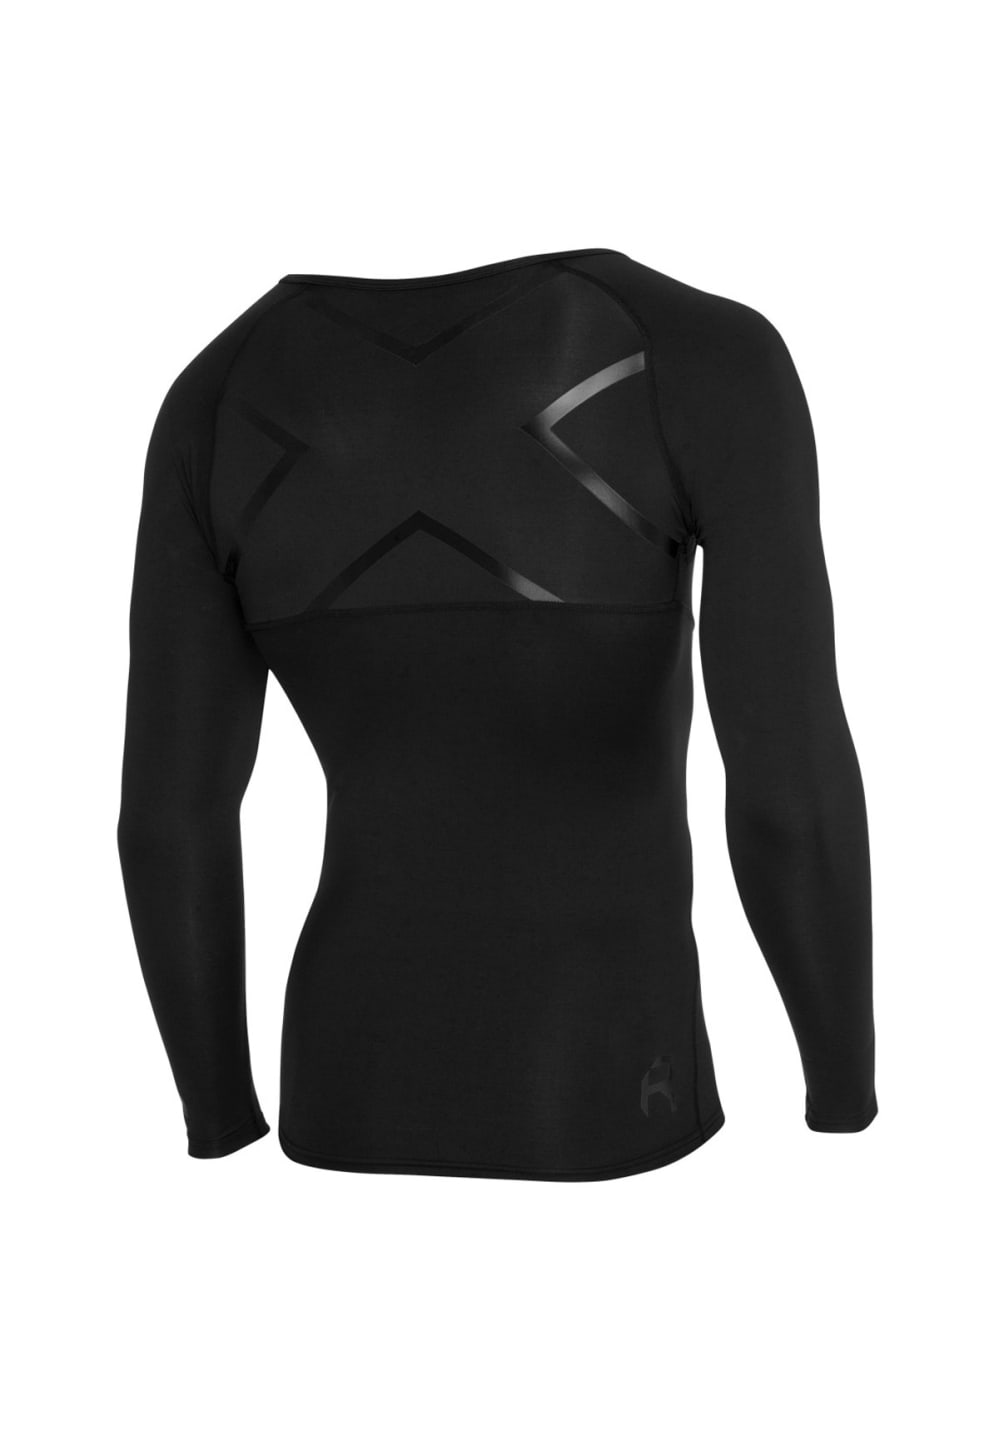 db8474f6b2 2XU Refresh Recovery Compression L/S Top - Running tops for Men ...